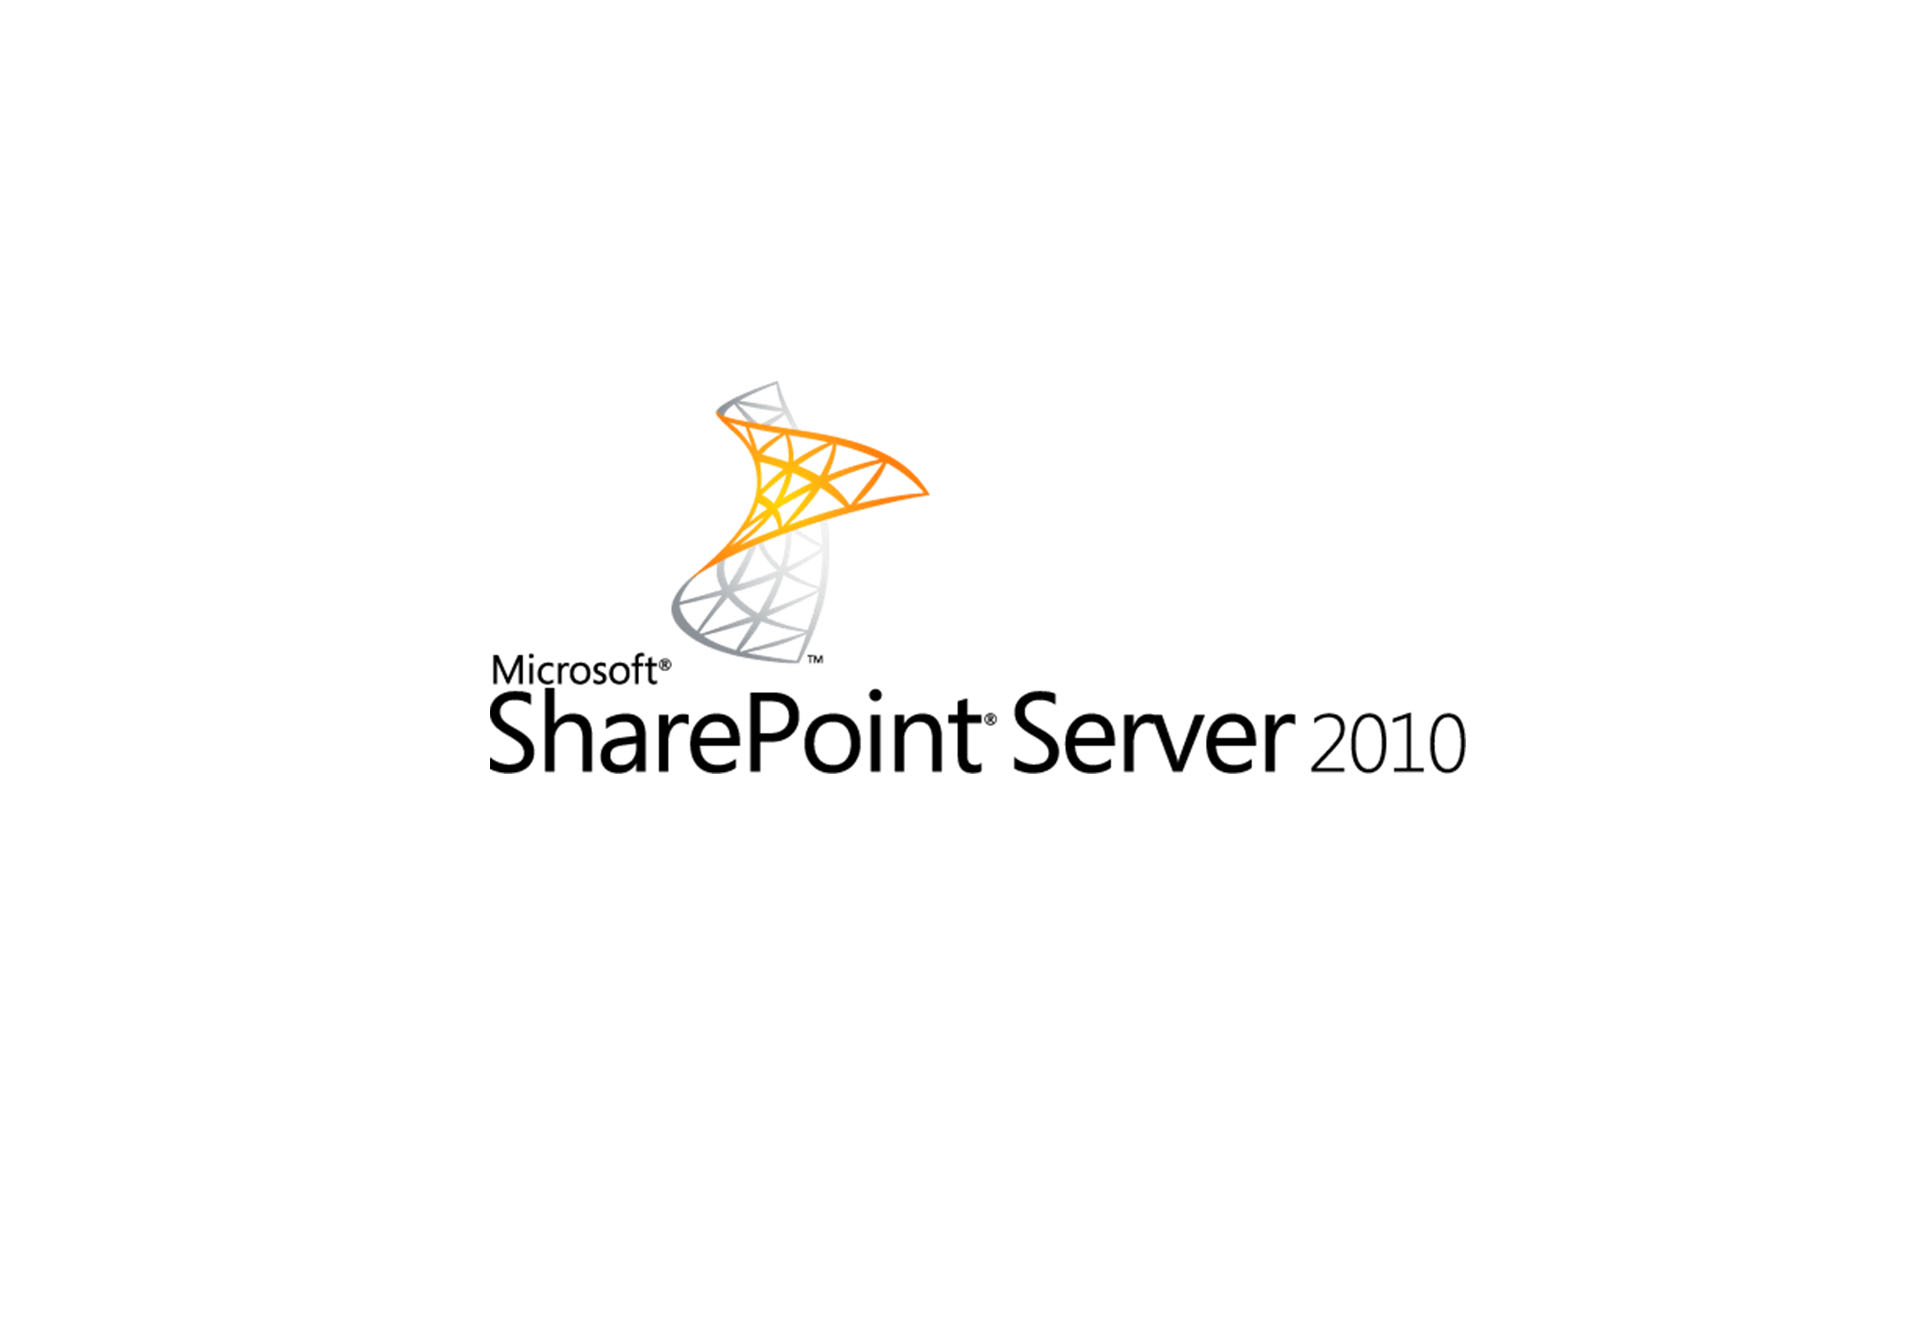 SharePoint 2010 Discontinuation in Two Years? The Opportunity is Now